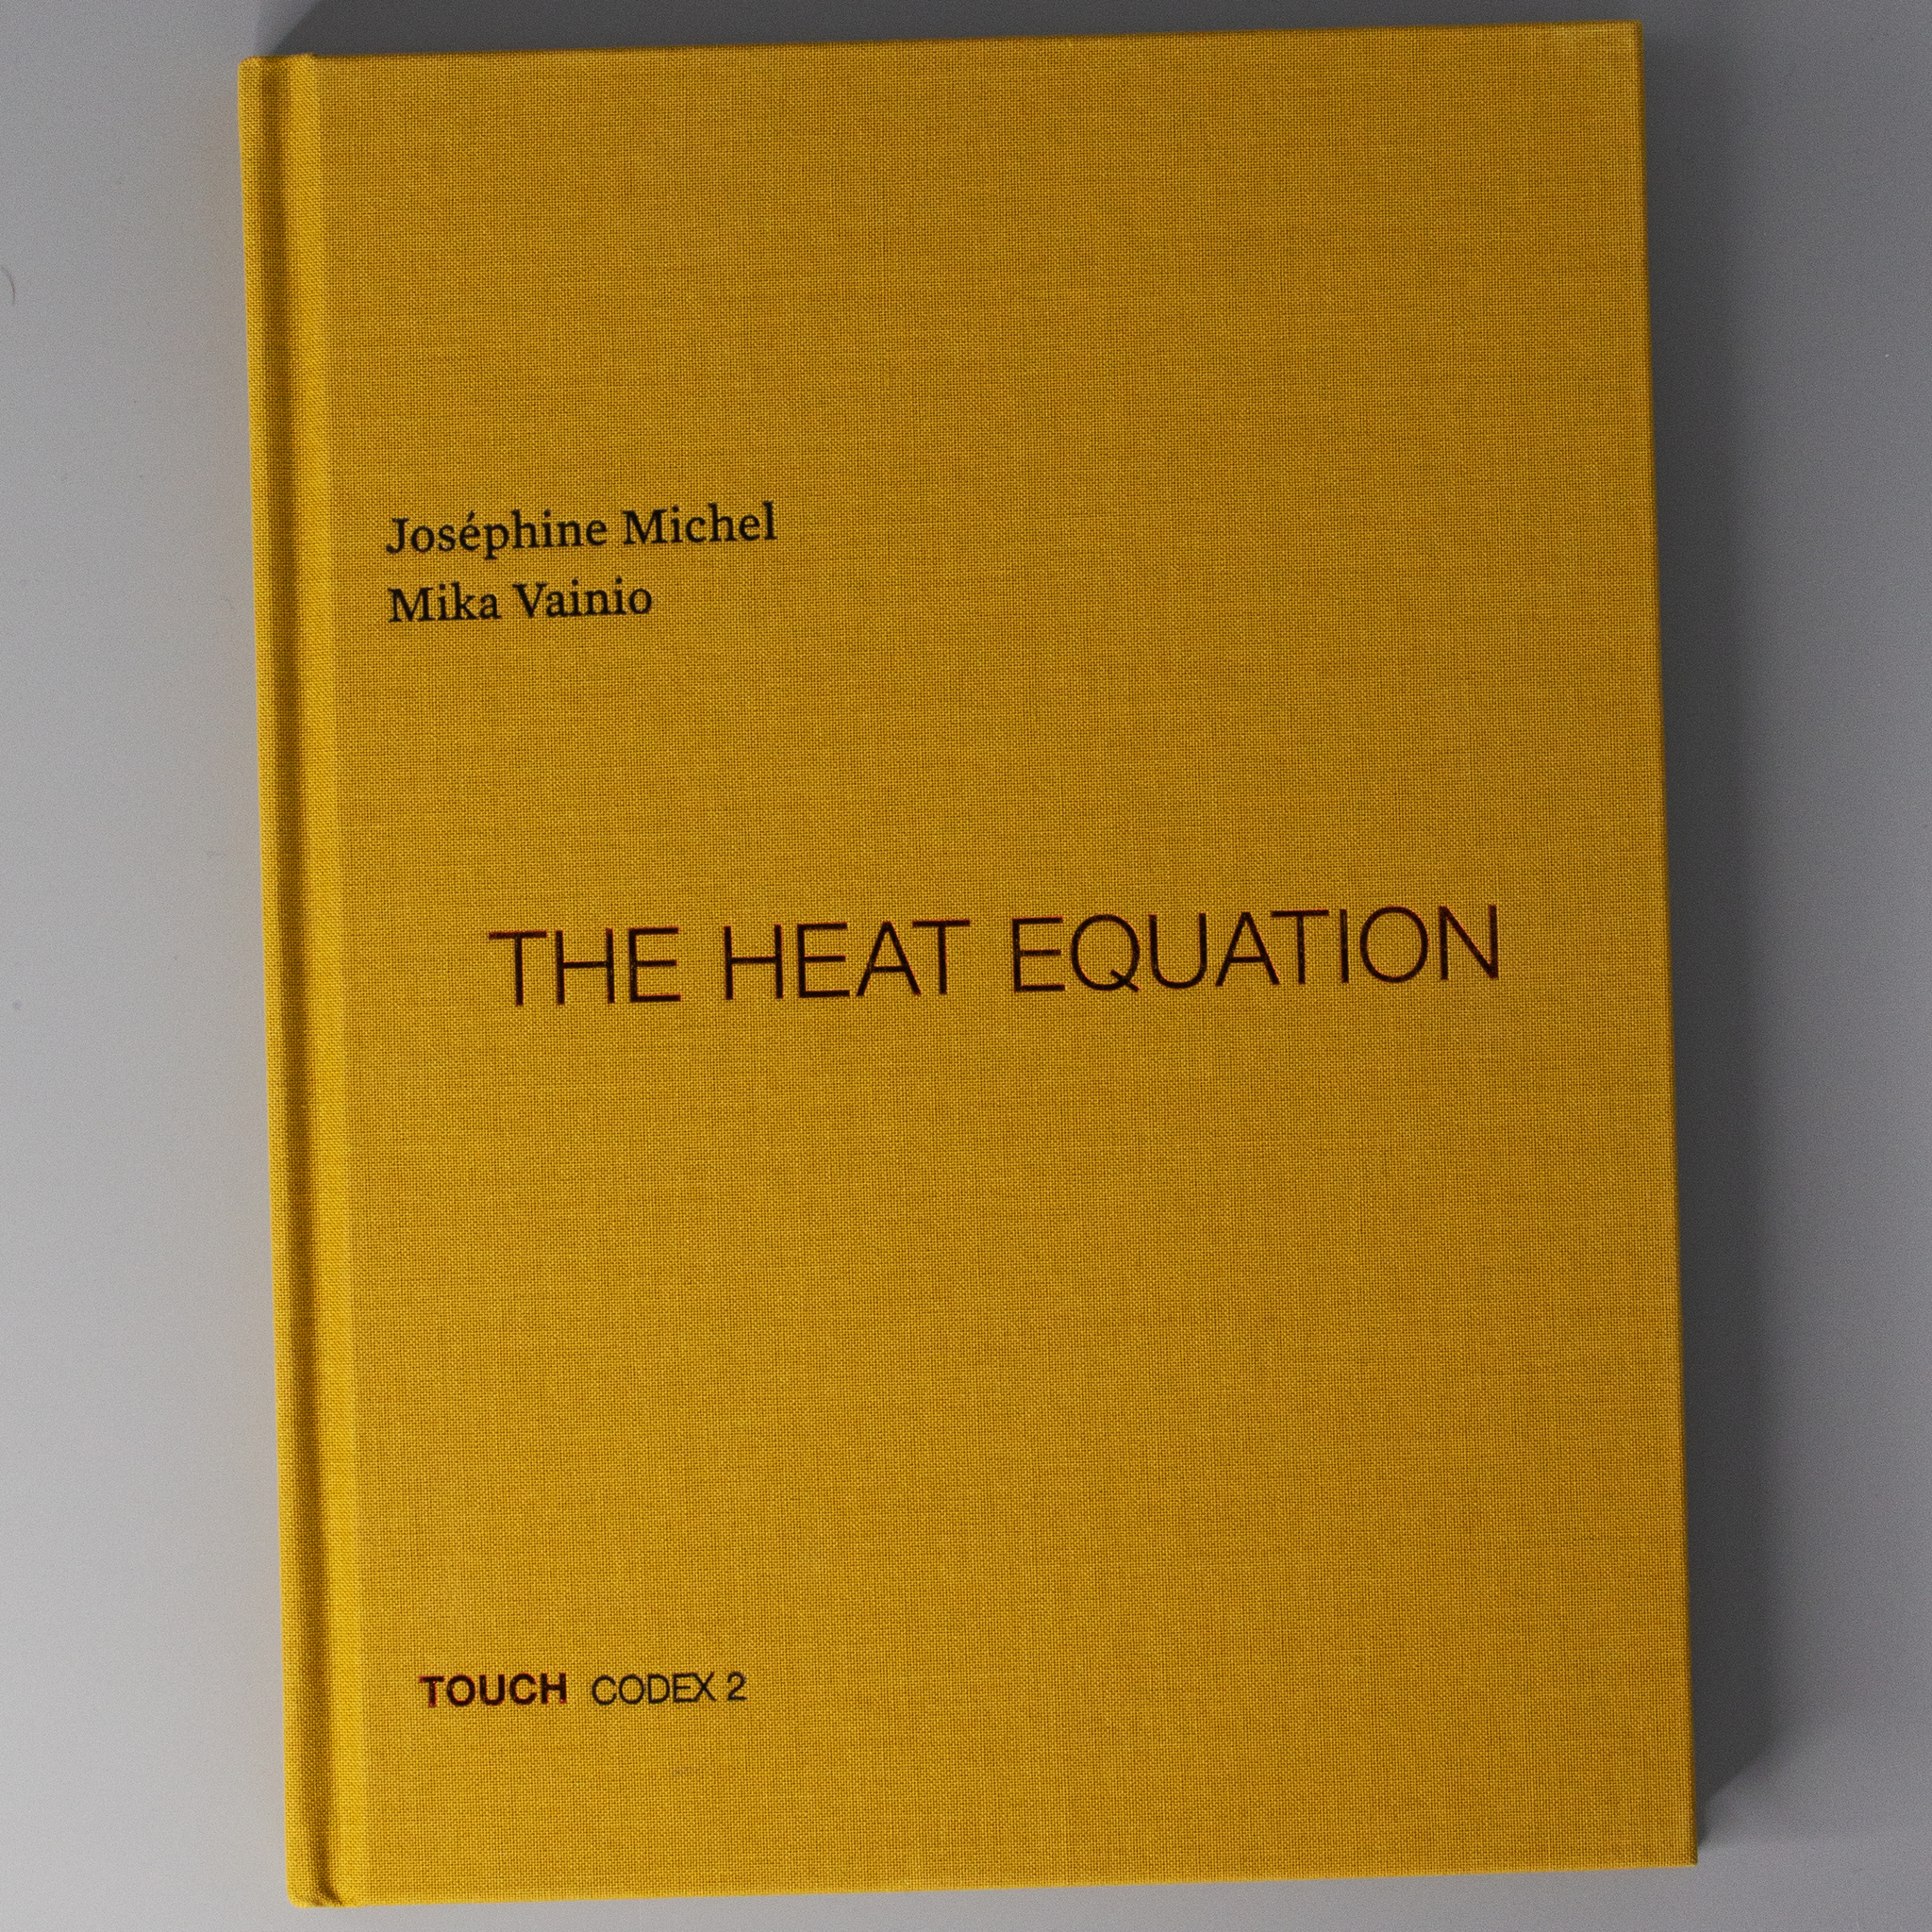 The Heat Equation